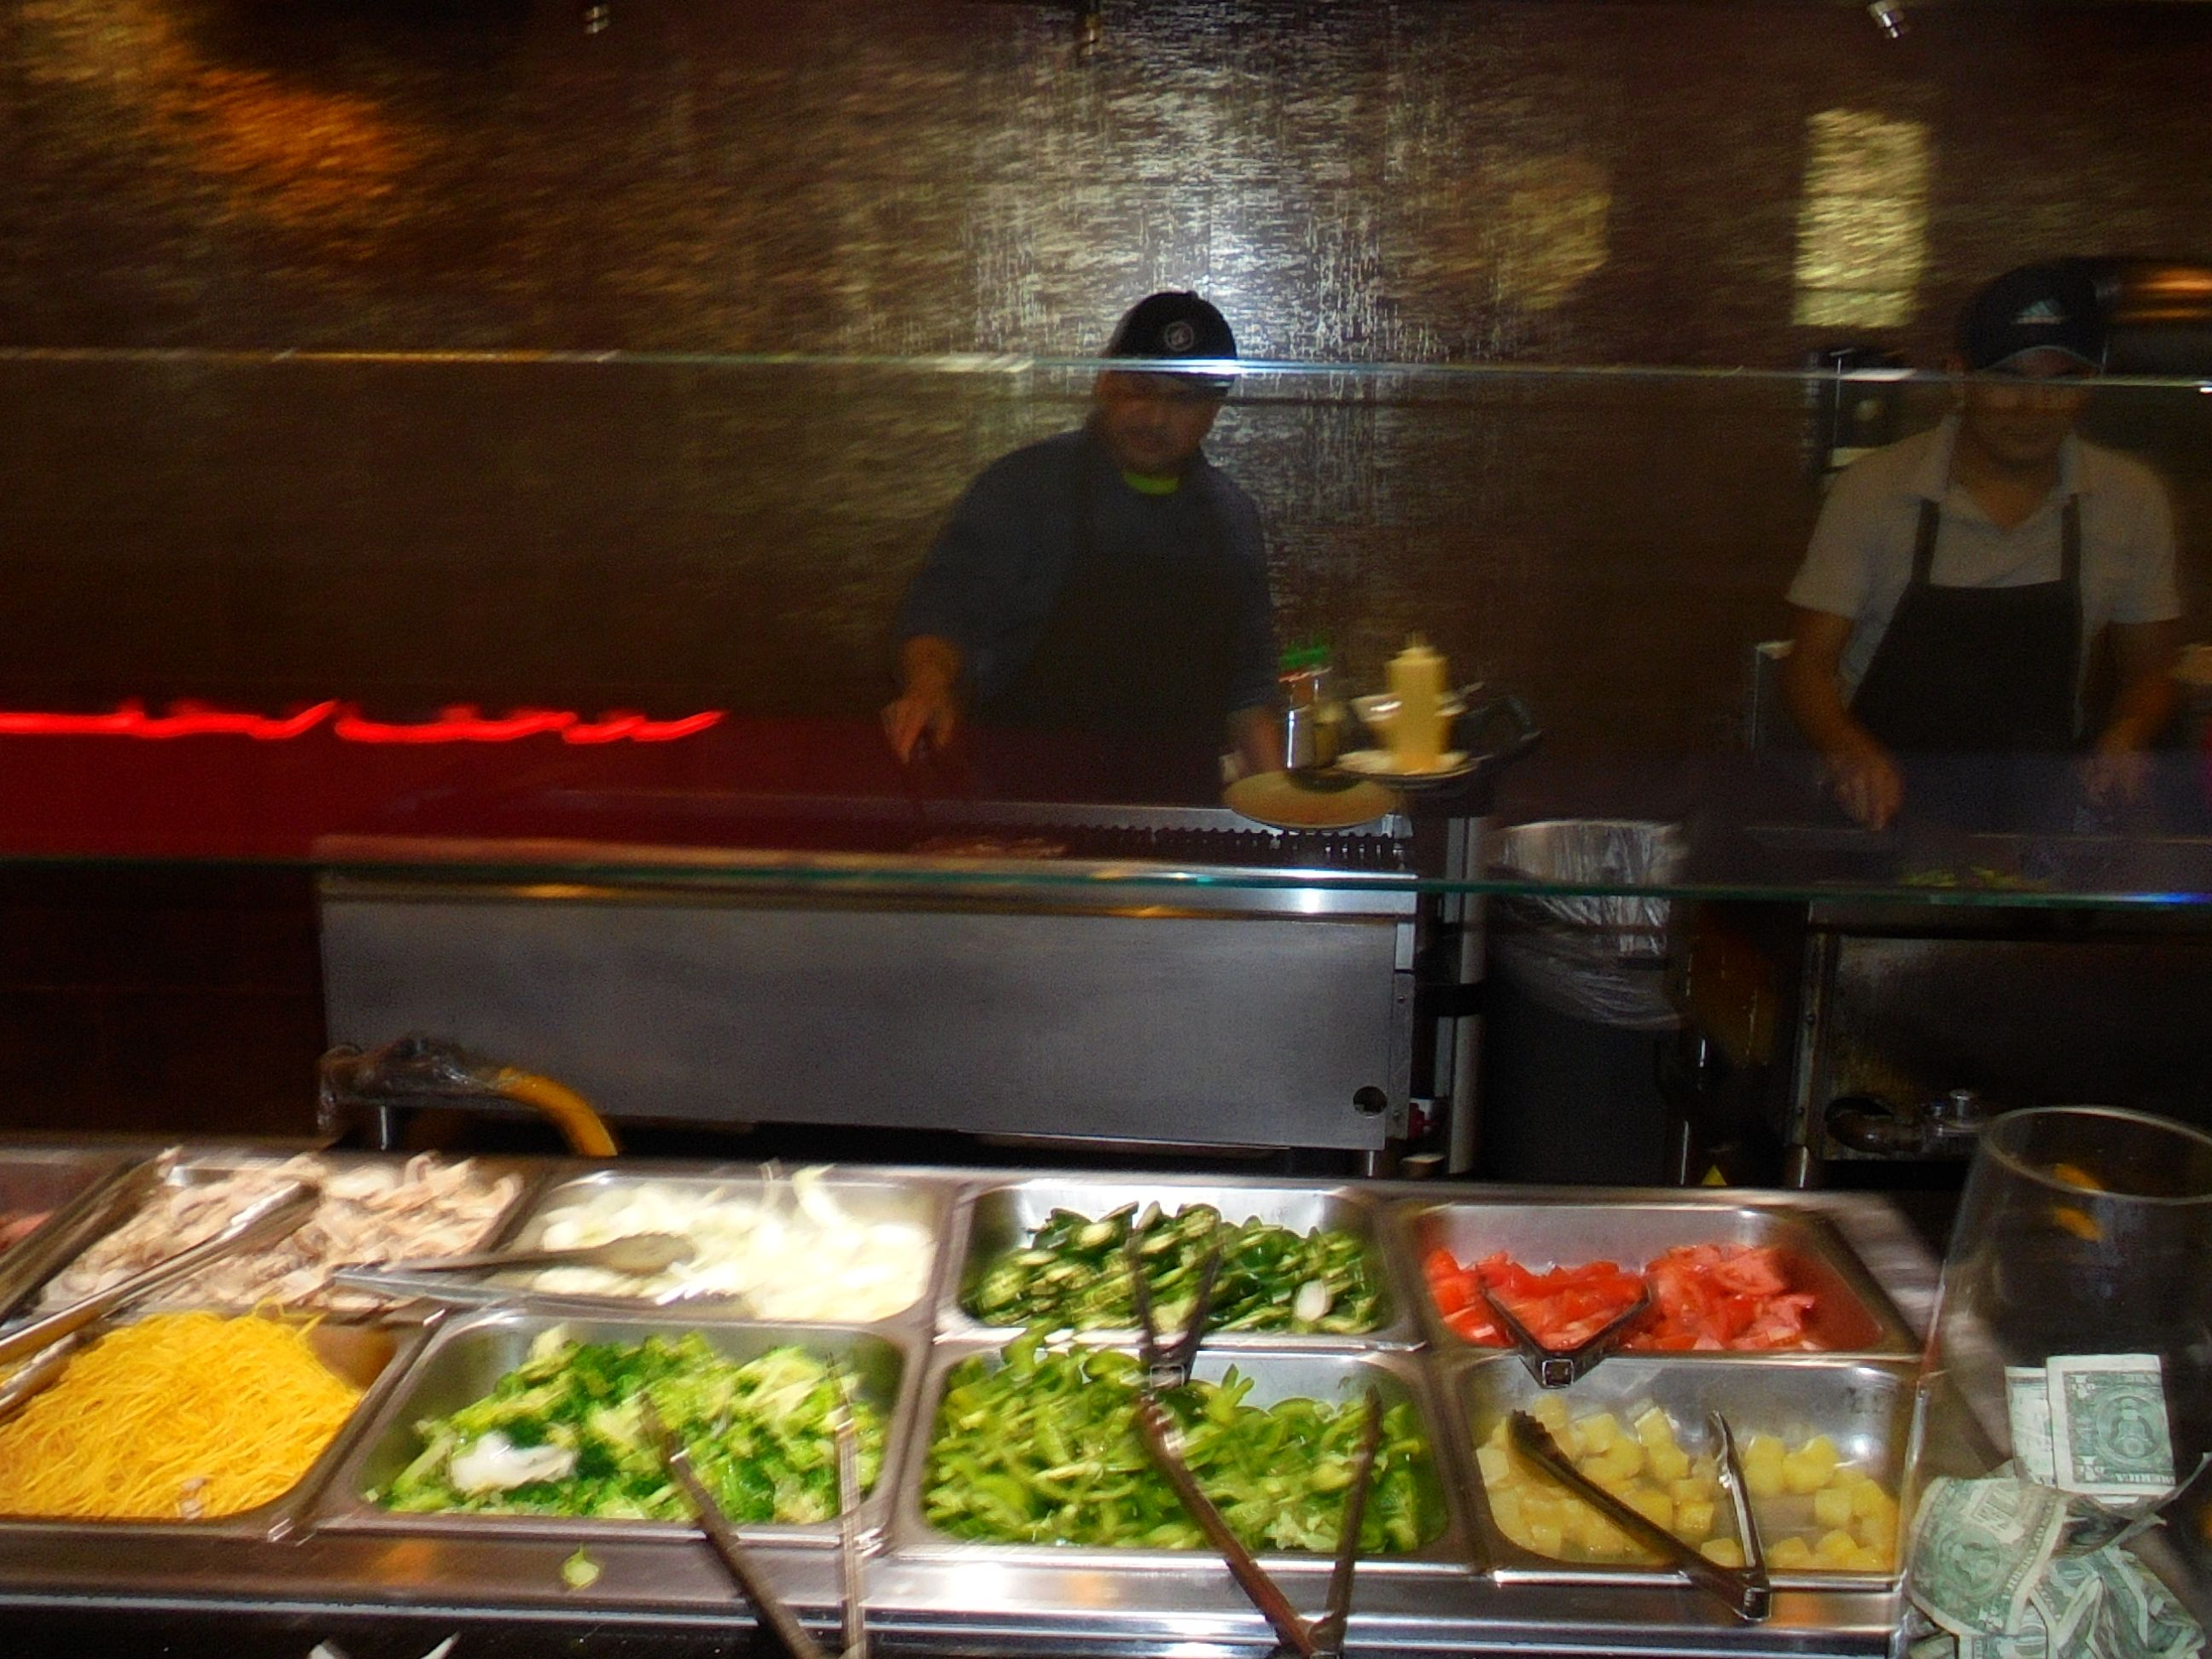 #fullstrength #foodgrilling at #panasianbuffet - www.drewrynewsnetwork.com